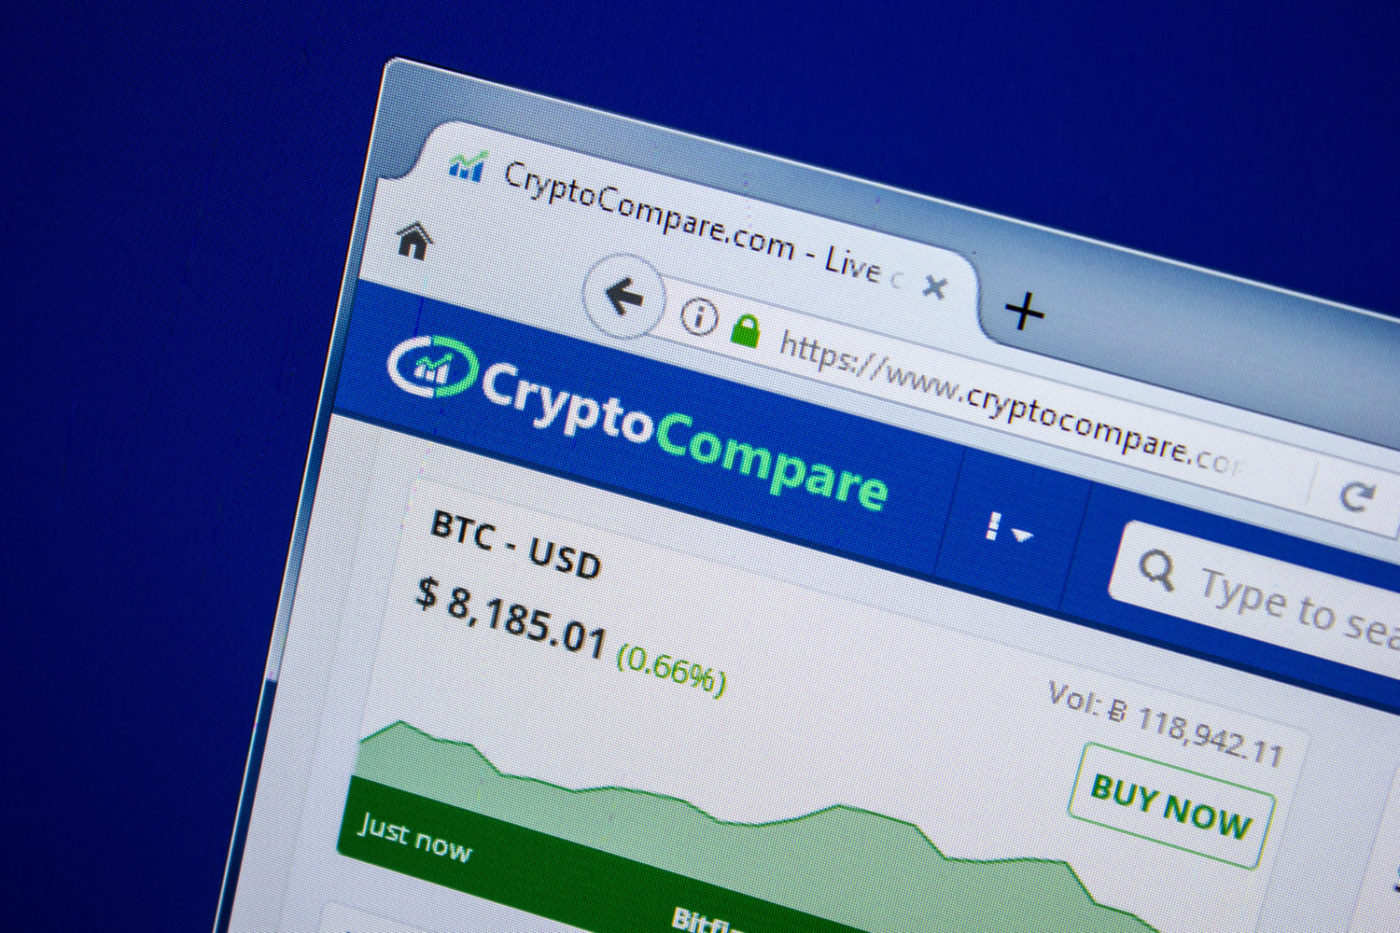 VanEck subsidiary invests in UK analytics startup CryptoCompare